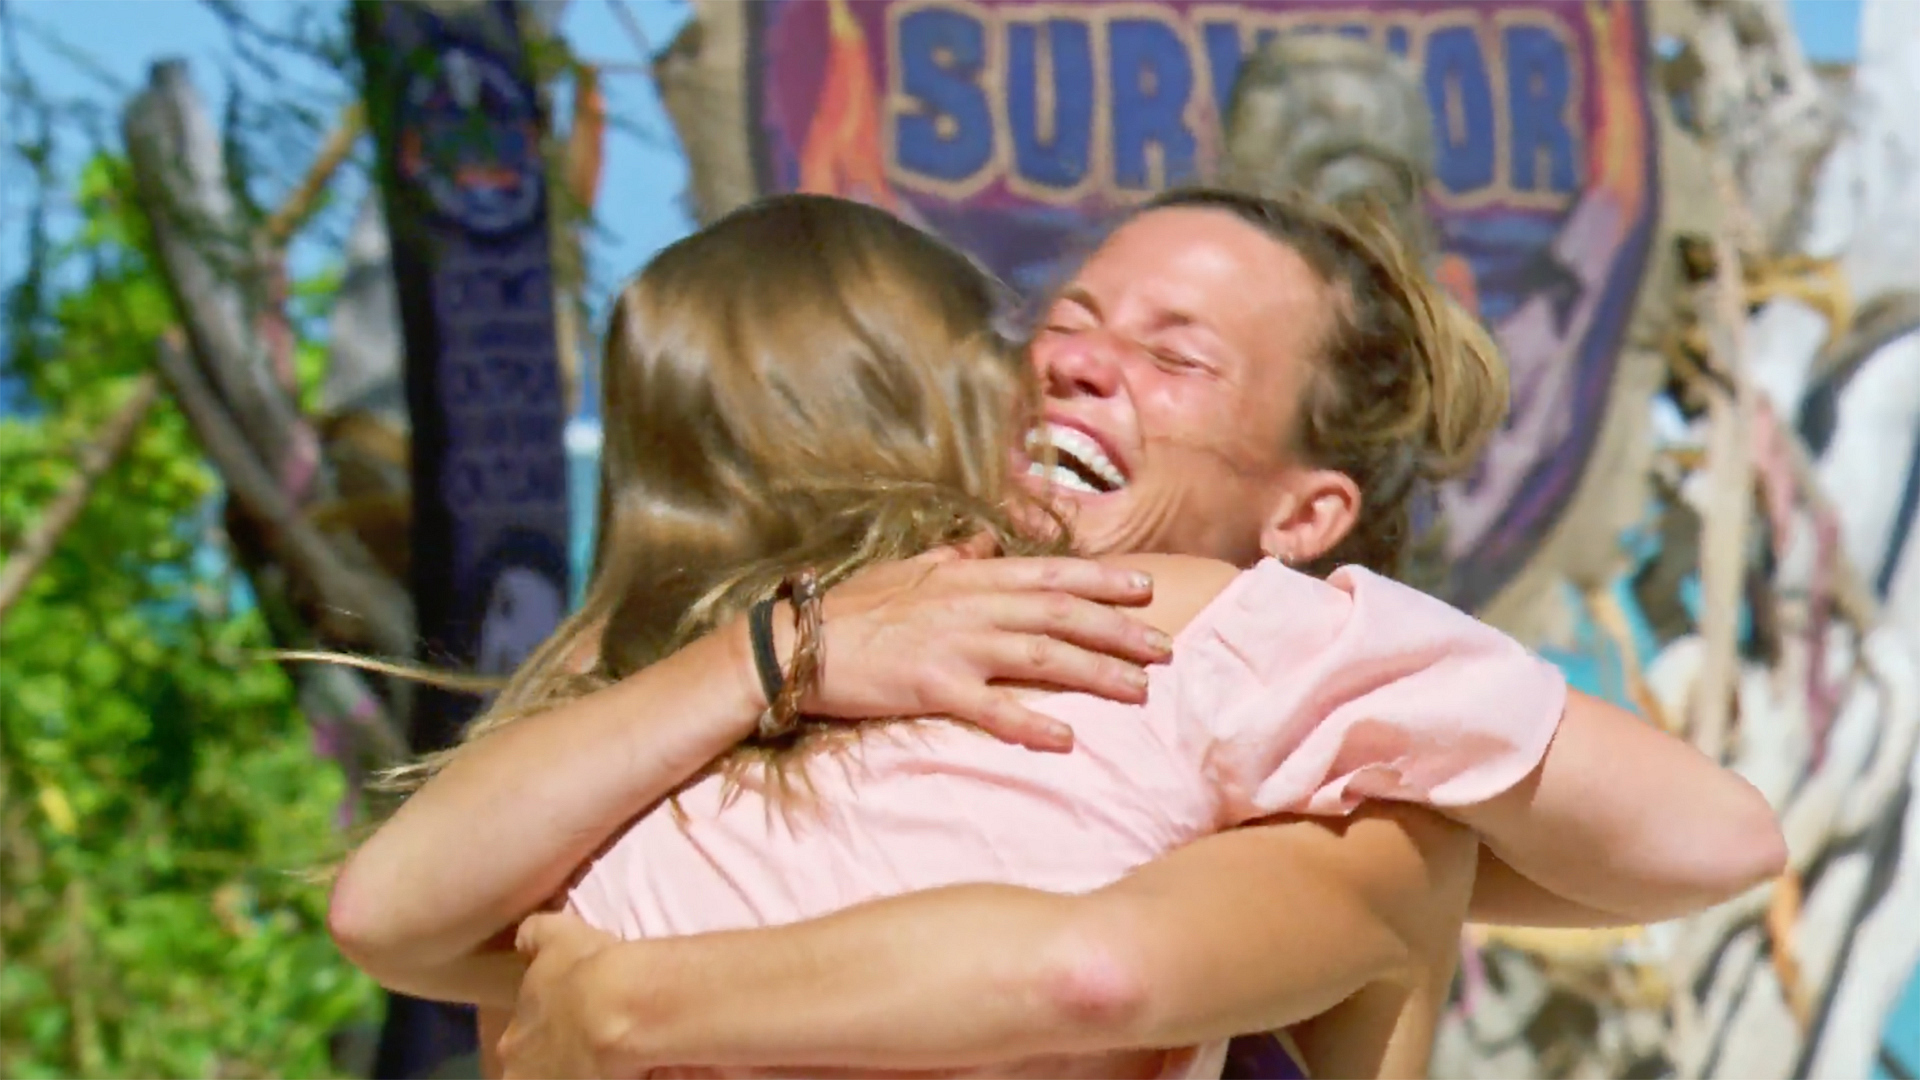 Season 36: Angela embraces her daughter.